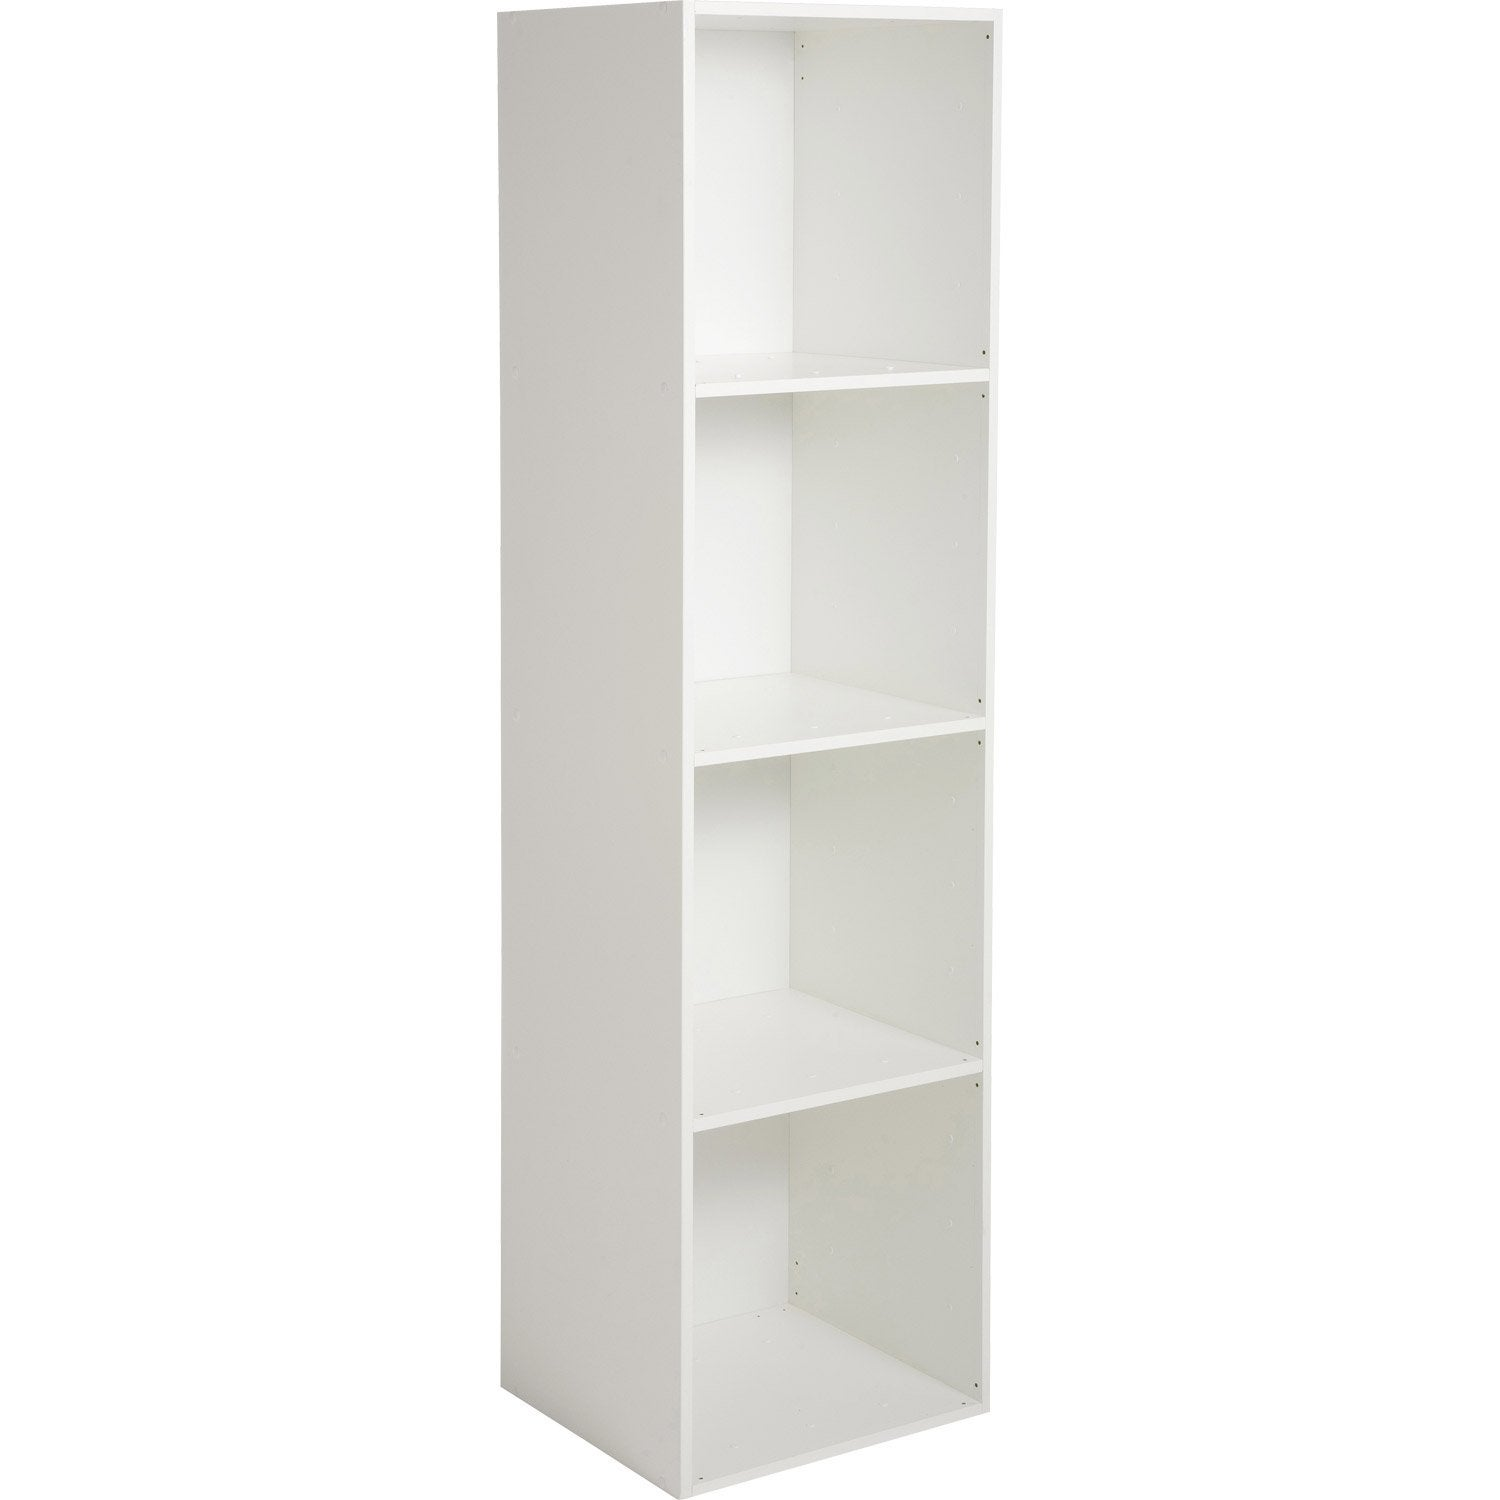 Etag re 4 cases multikaz blanc x x - Etagere rangement castorama ...